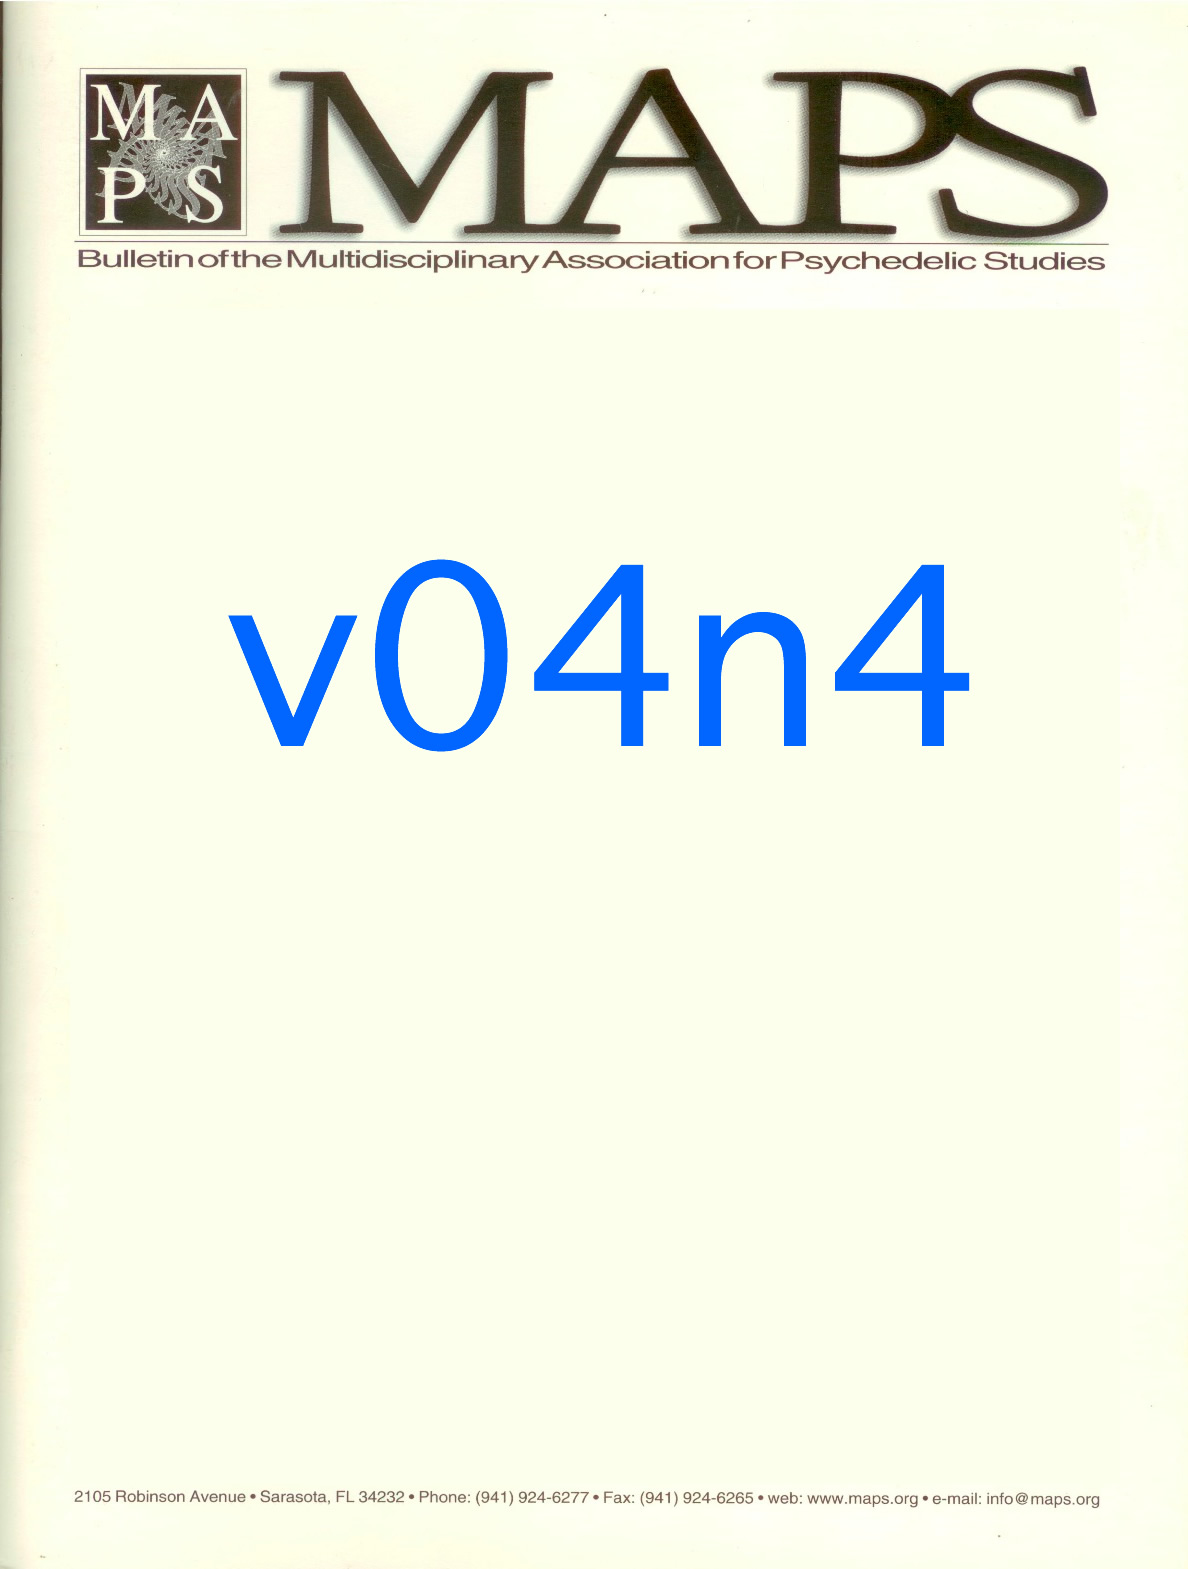 Spring 1994 Vol. 04, No. 4 Laying the Groundwork